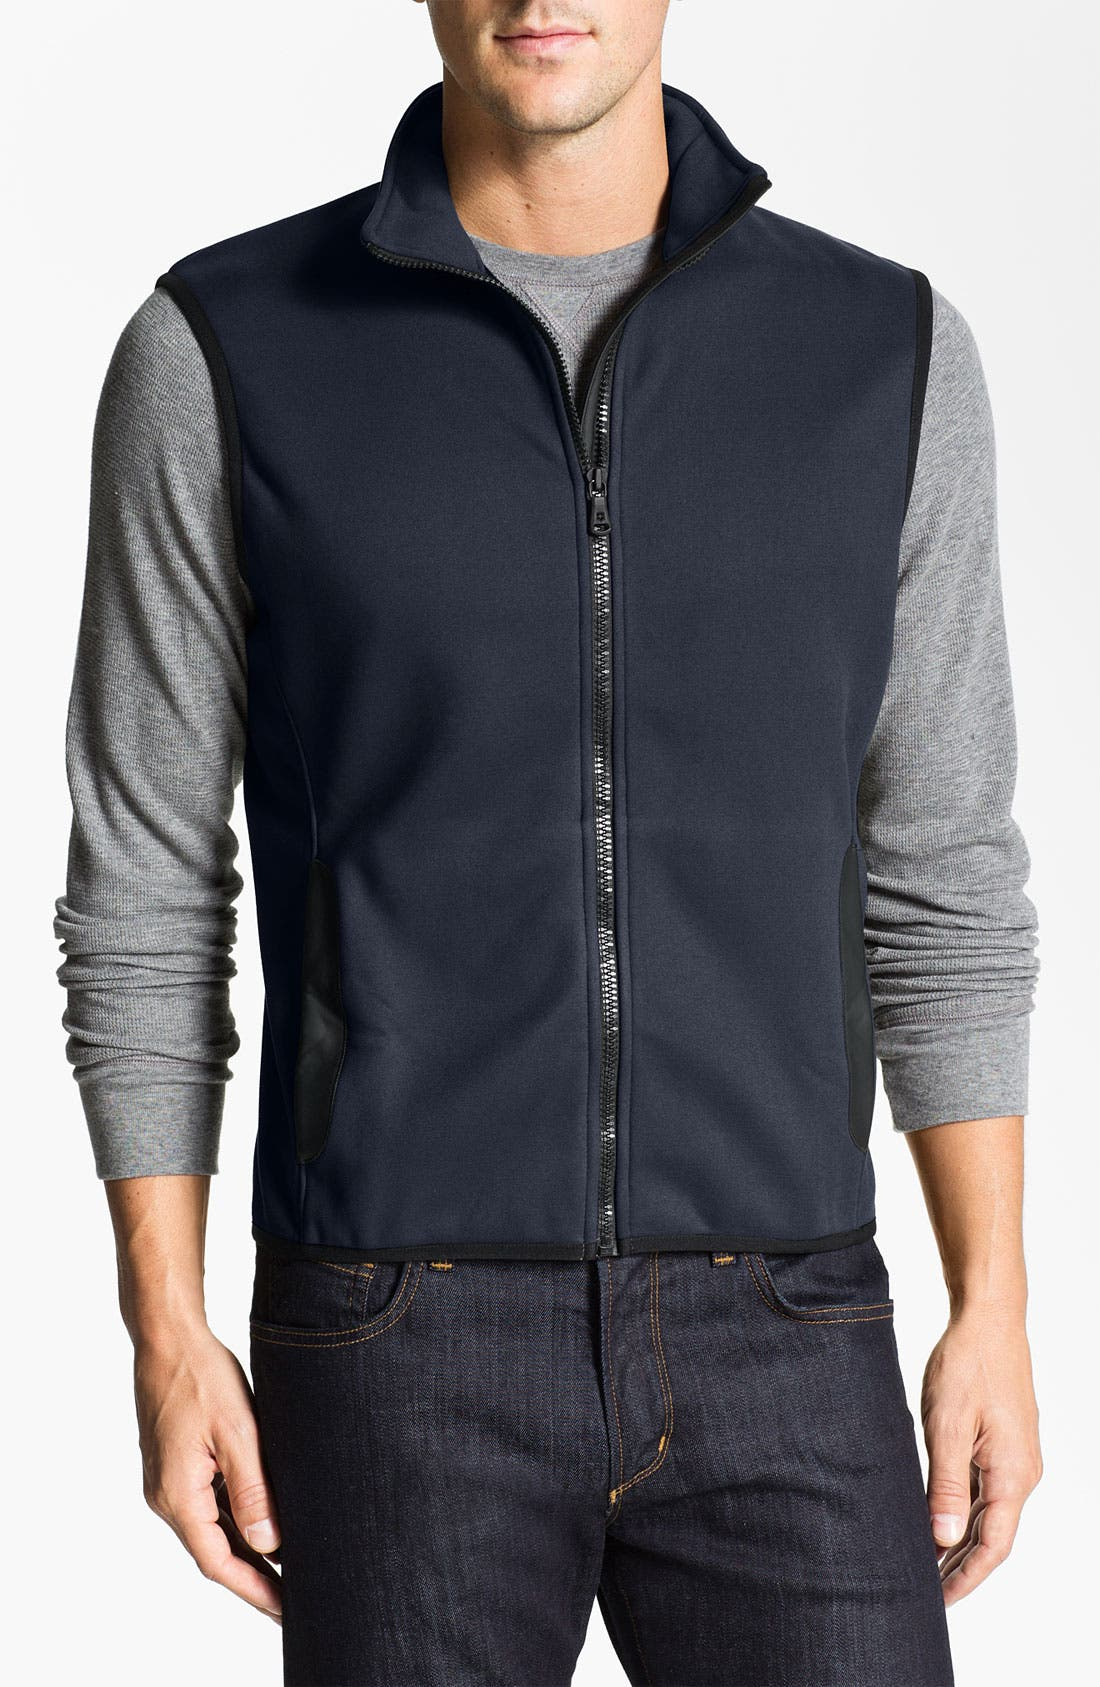 Alternate Image 1 Selected - Victorinox Swiss Army® 'Base' Fleece Vest (Online Exclusive)